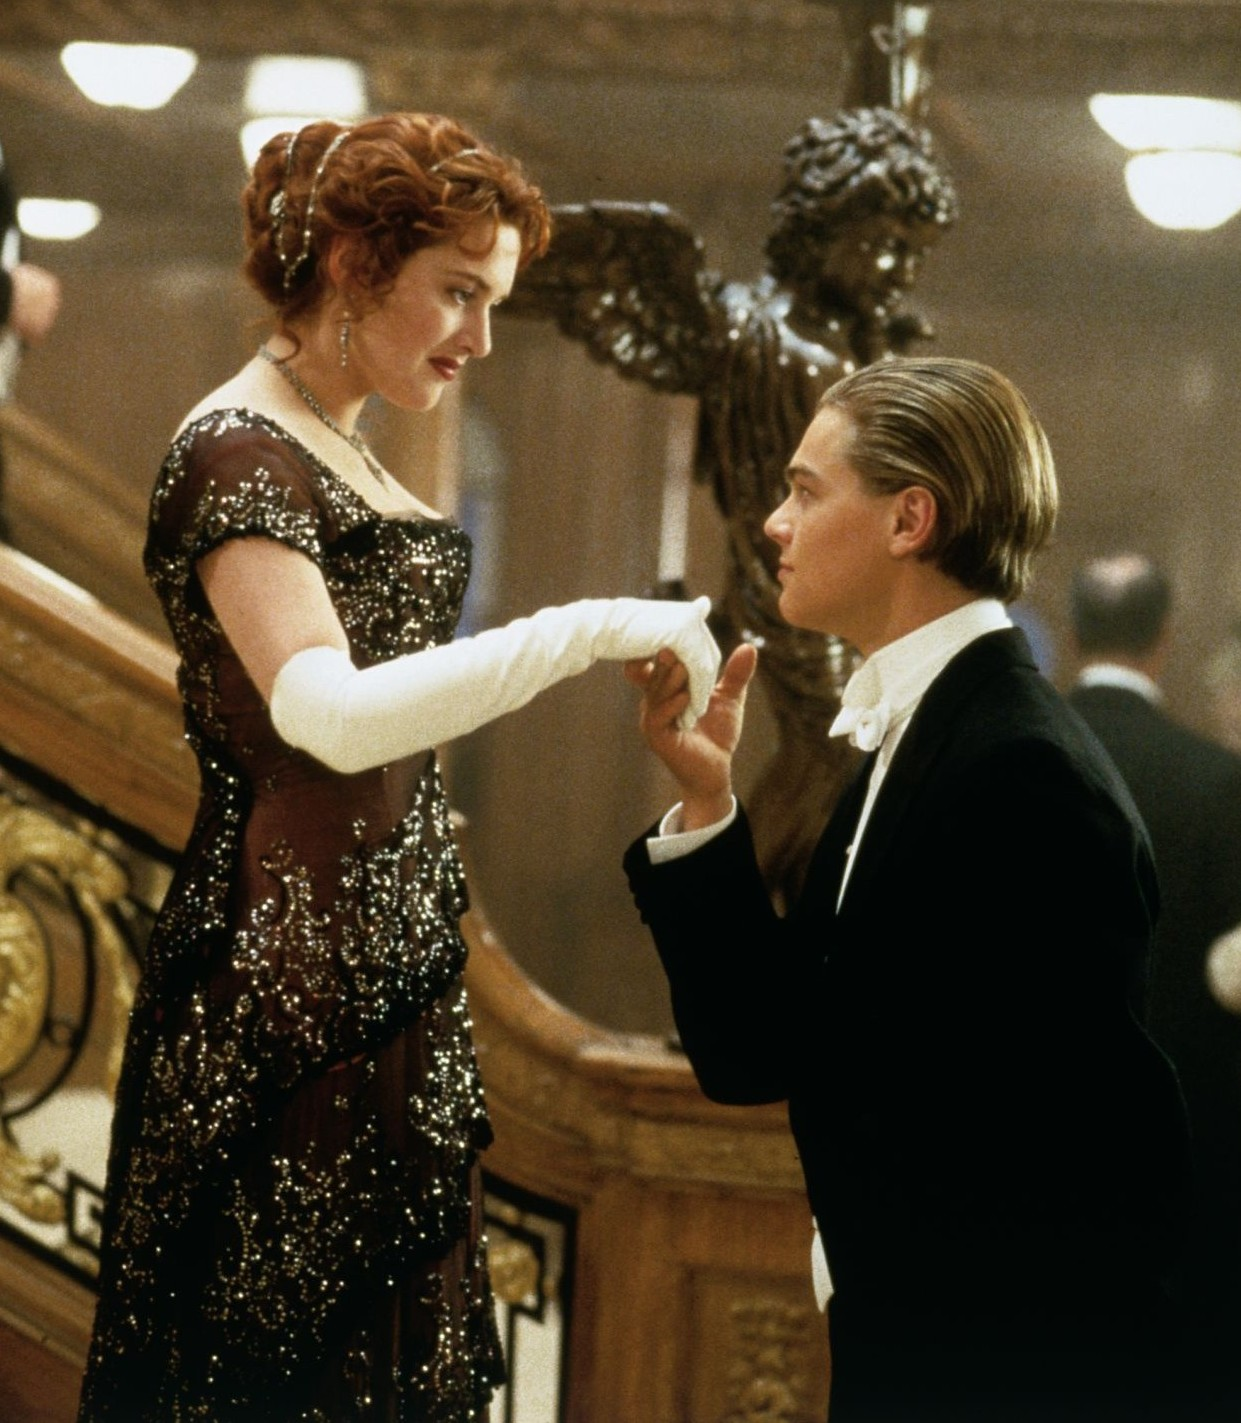 Kate Winslet Titanic Painting Scene Titanic: a film to remember